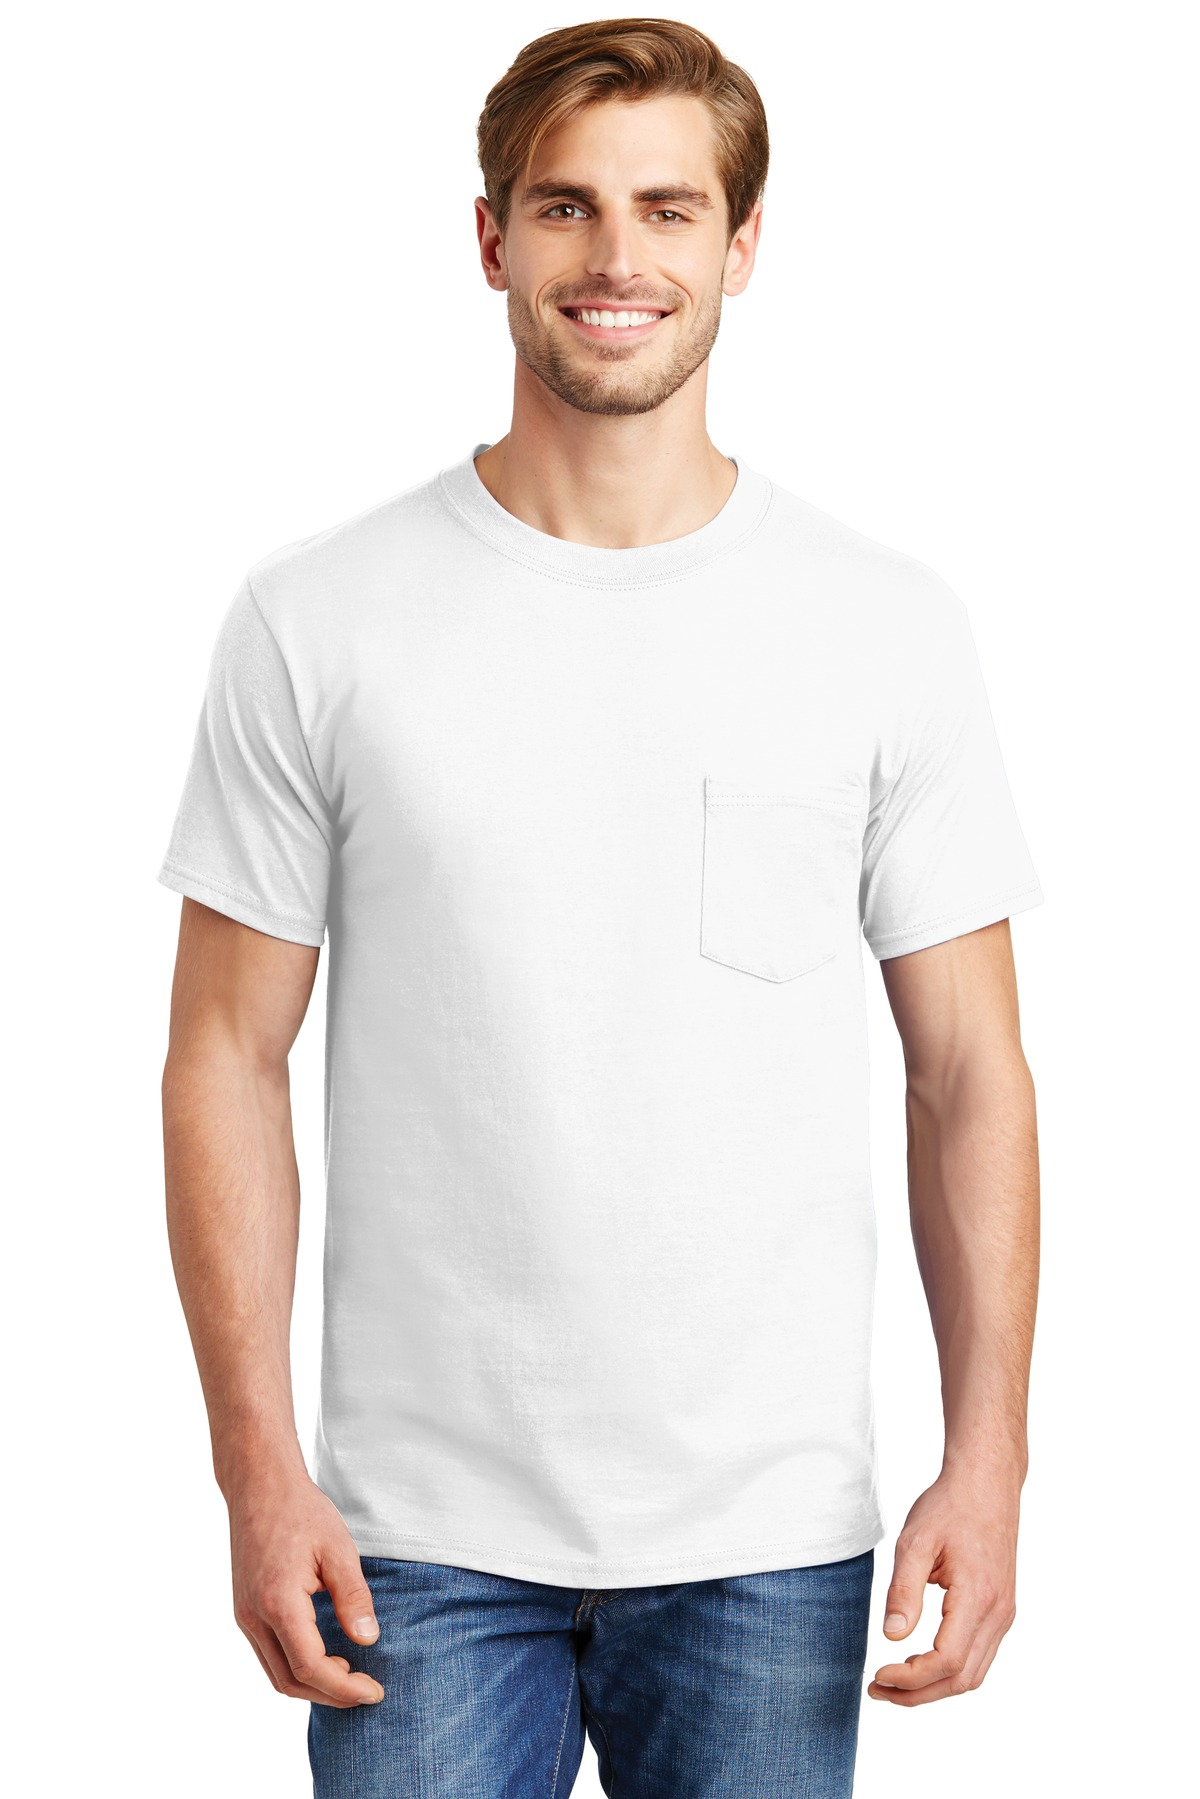 Hanes ®  Beefy-T ®  - 100% Cotton T-Shirt with Pocket. 5190 - White